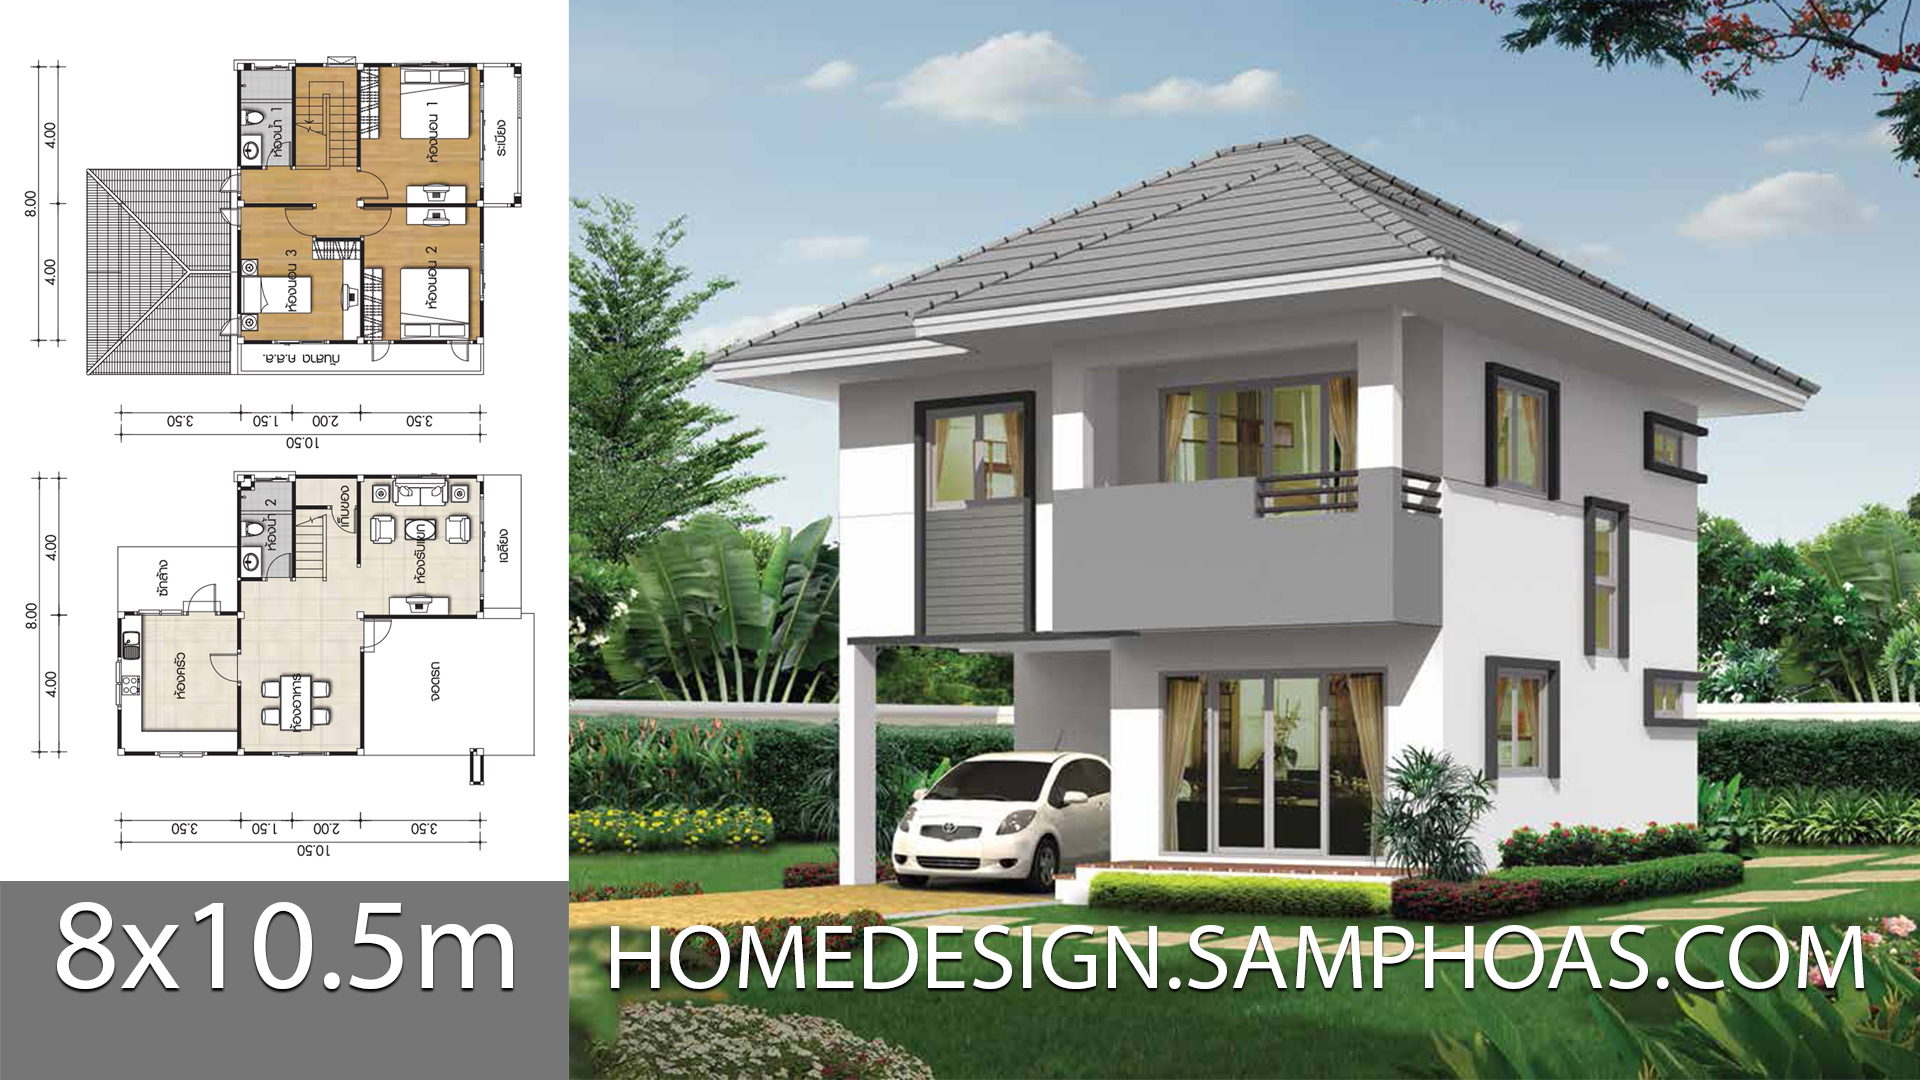 House design plans 8x10.5m with 3 bedrooms - Home Ideas